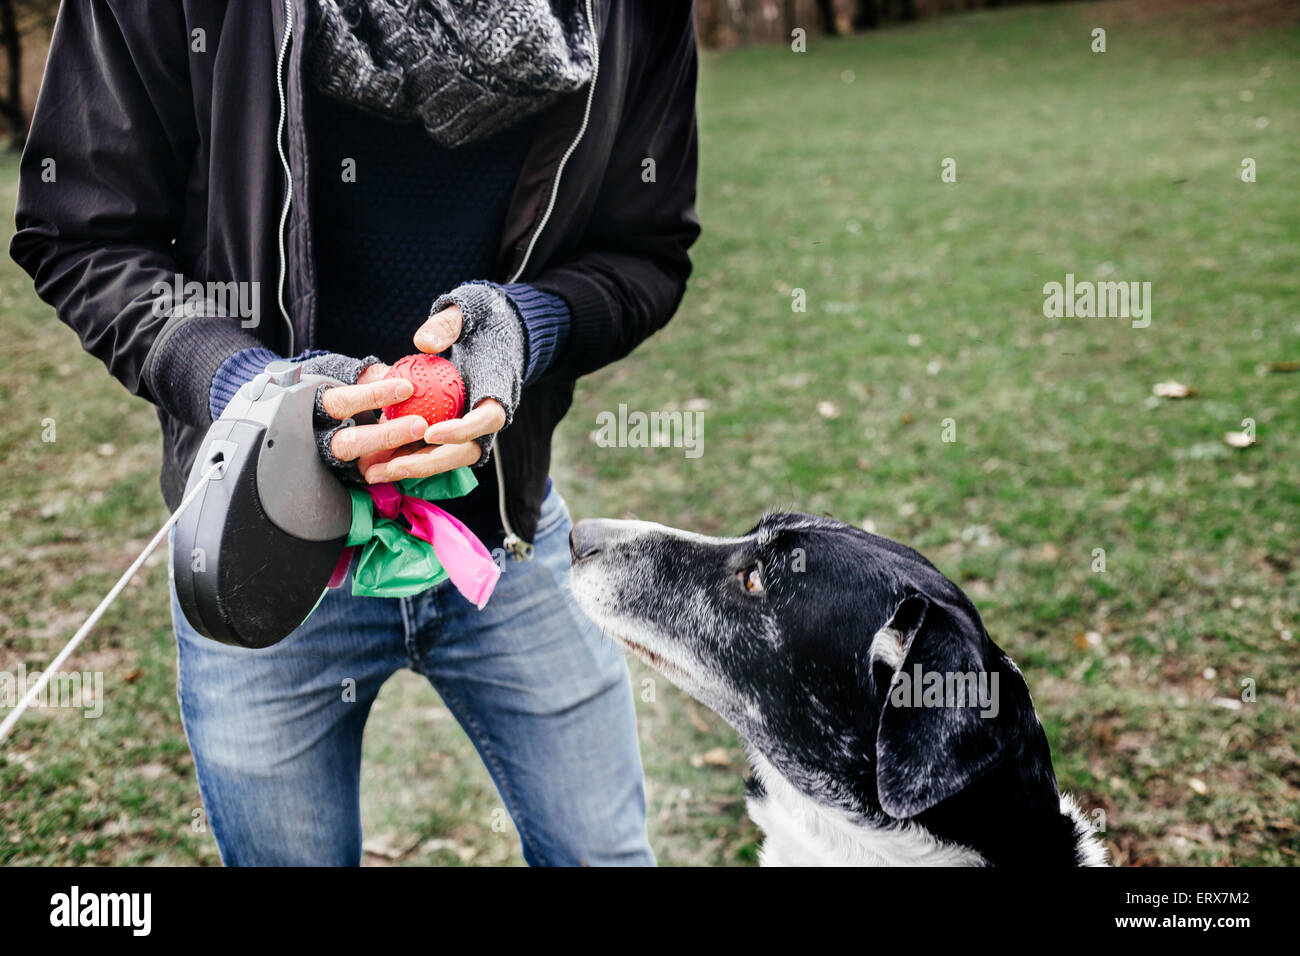 Midsection of man holding ball by mixed-breed dog at park - Stock Image